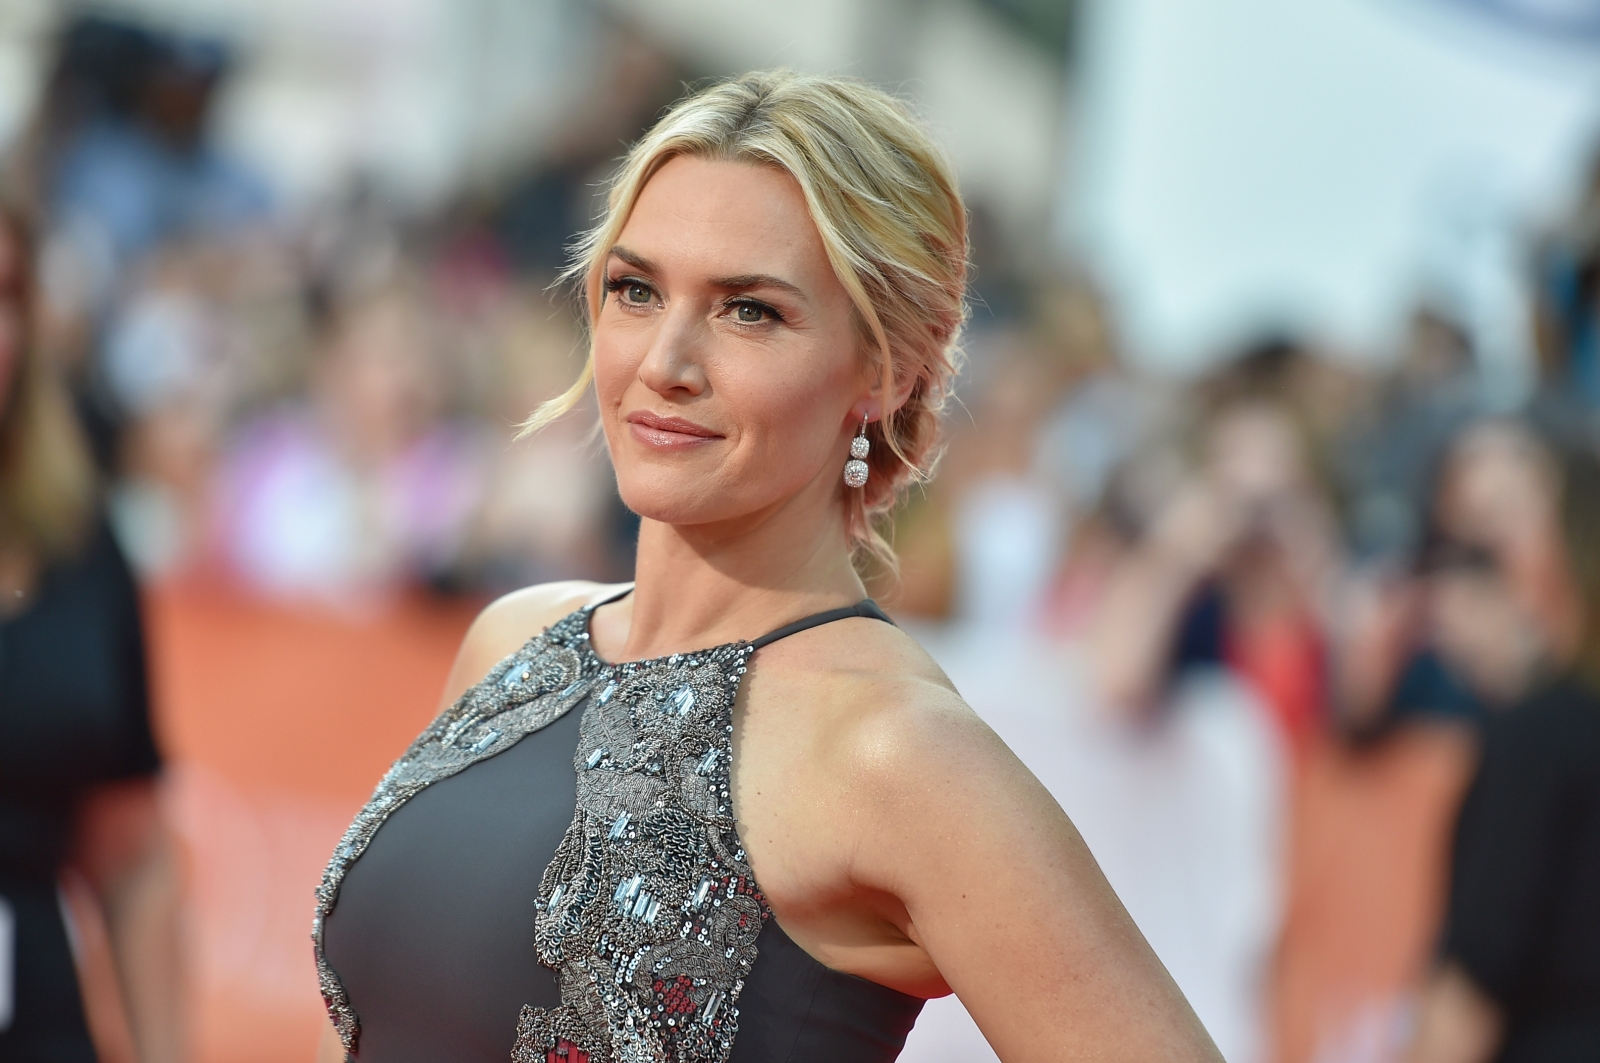 Kate Winslet delivers ... Kate Winslet